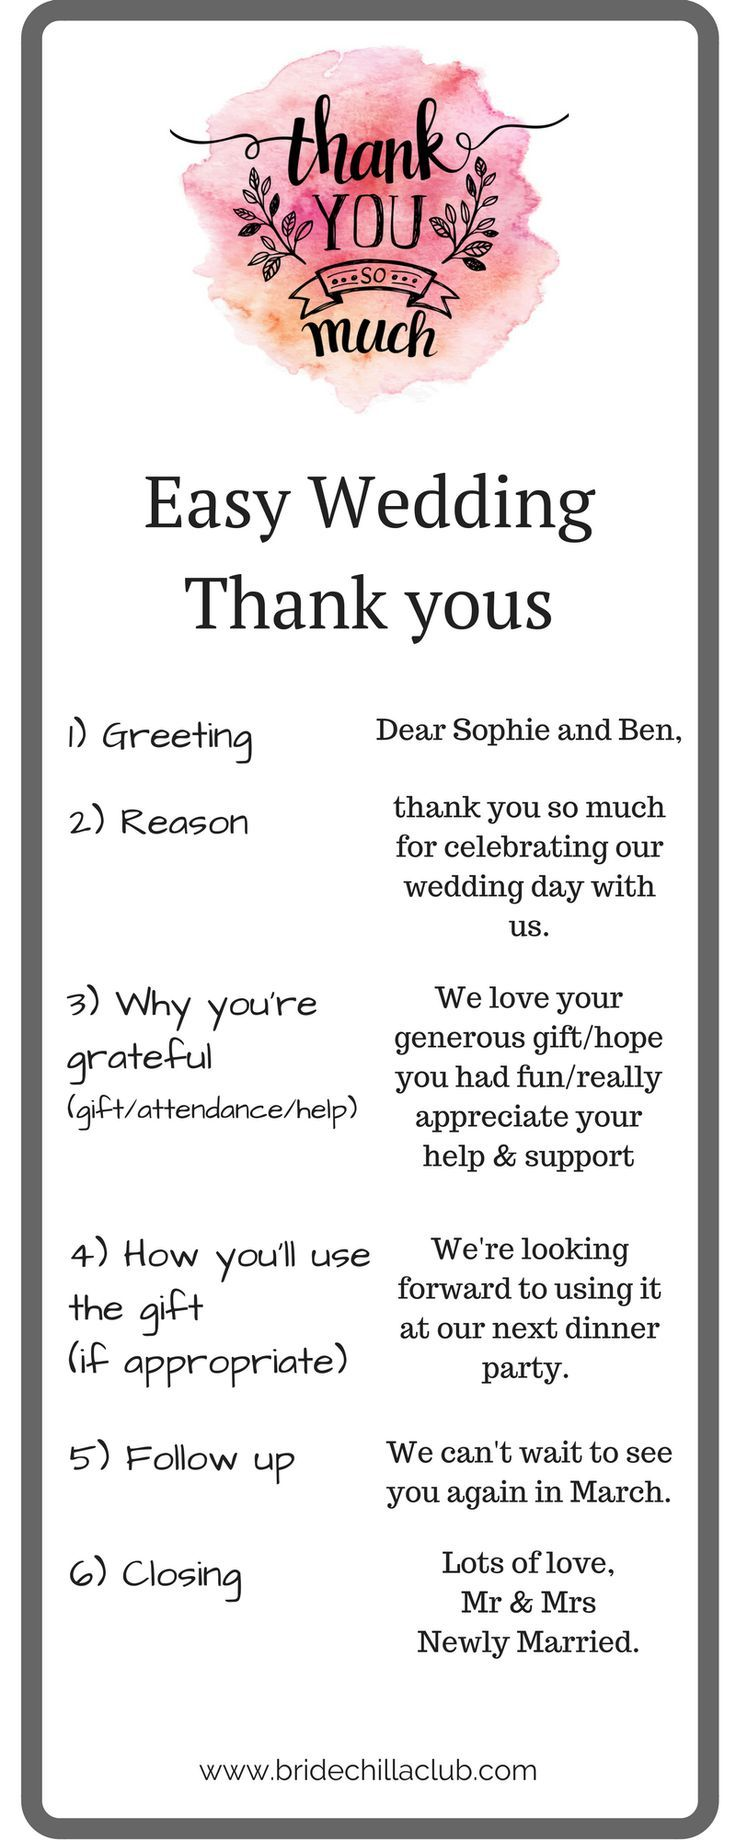 Wedding Gift Thank Yous: Pin It For Later To Make Your Wedding Thank Yous Quick And